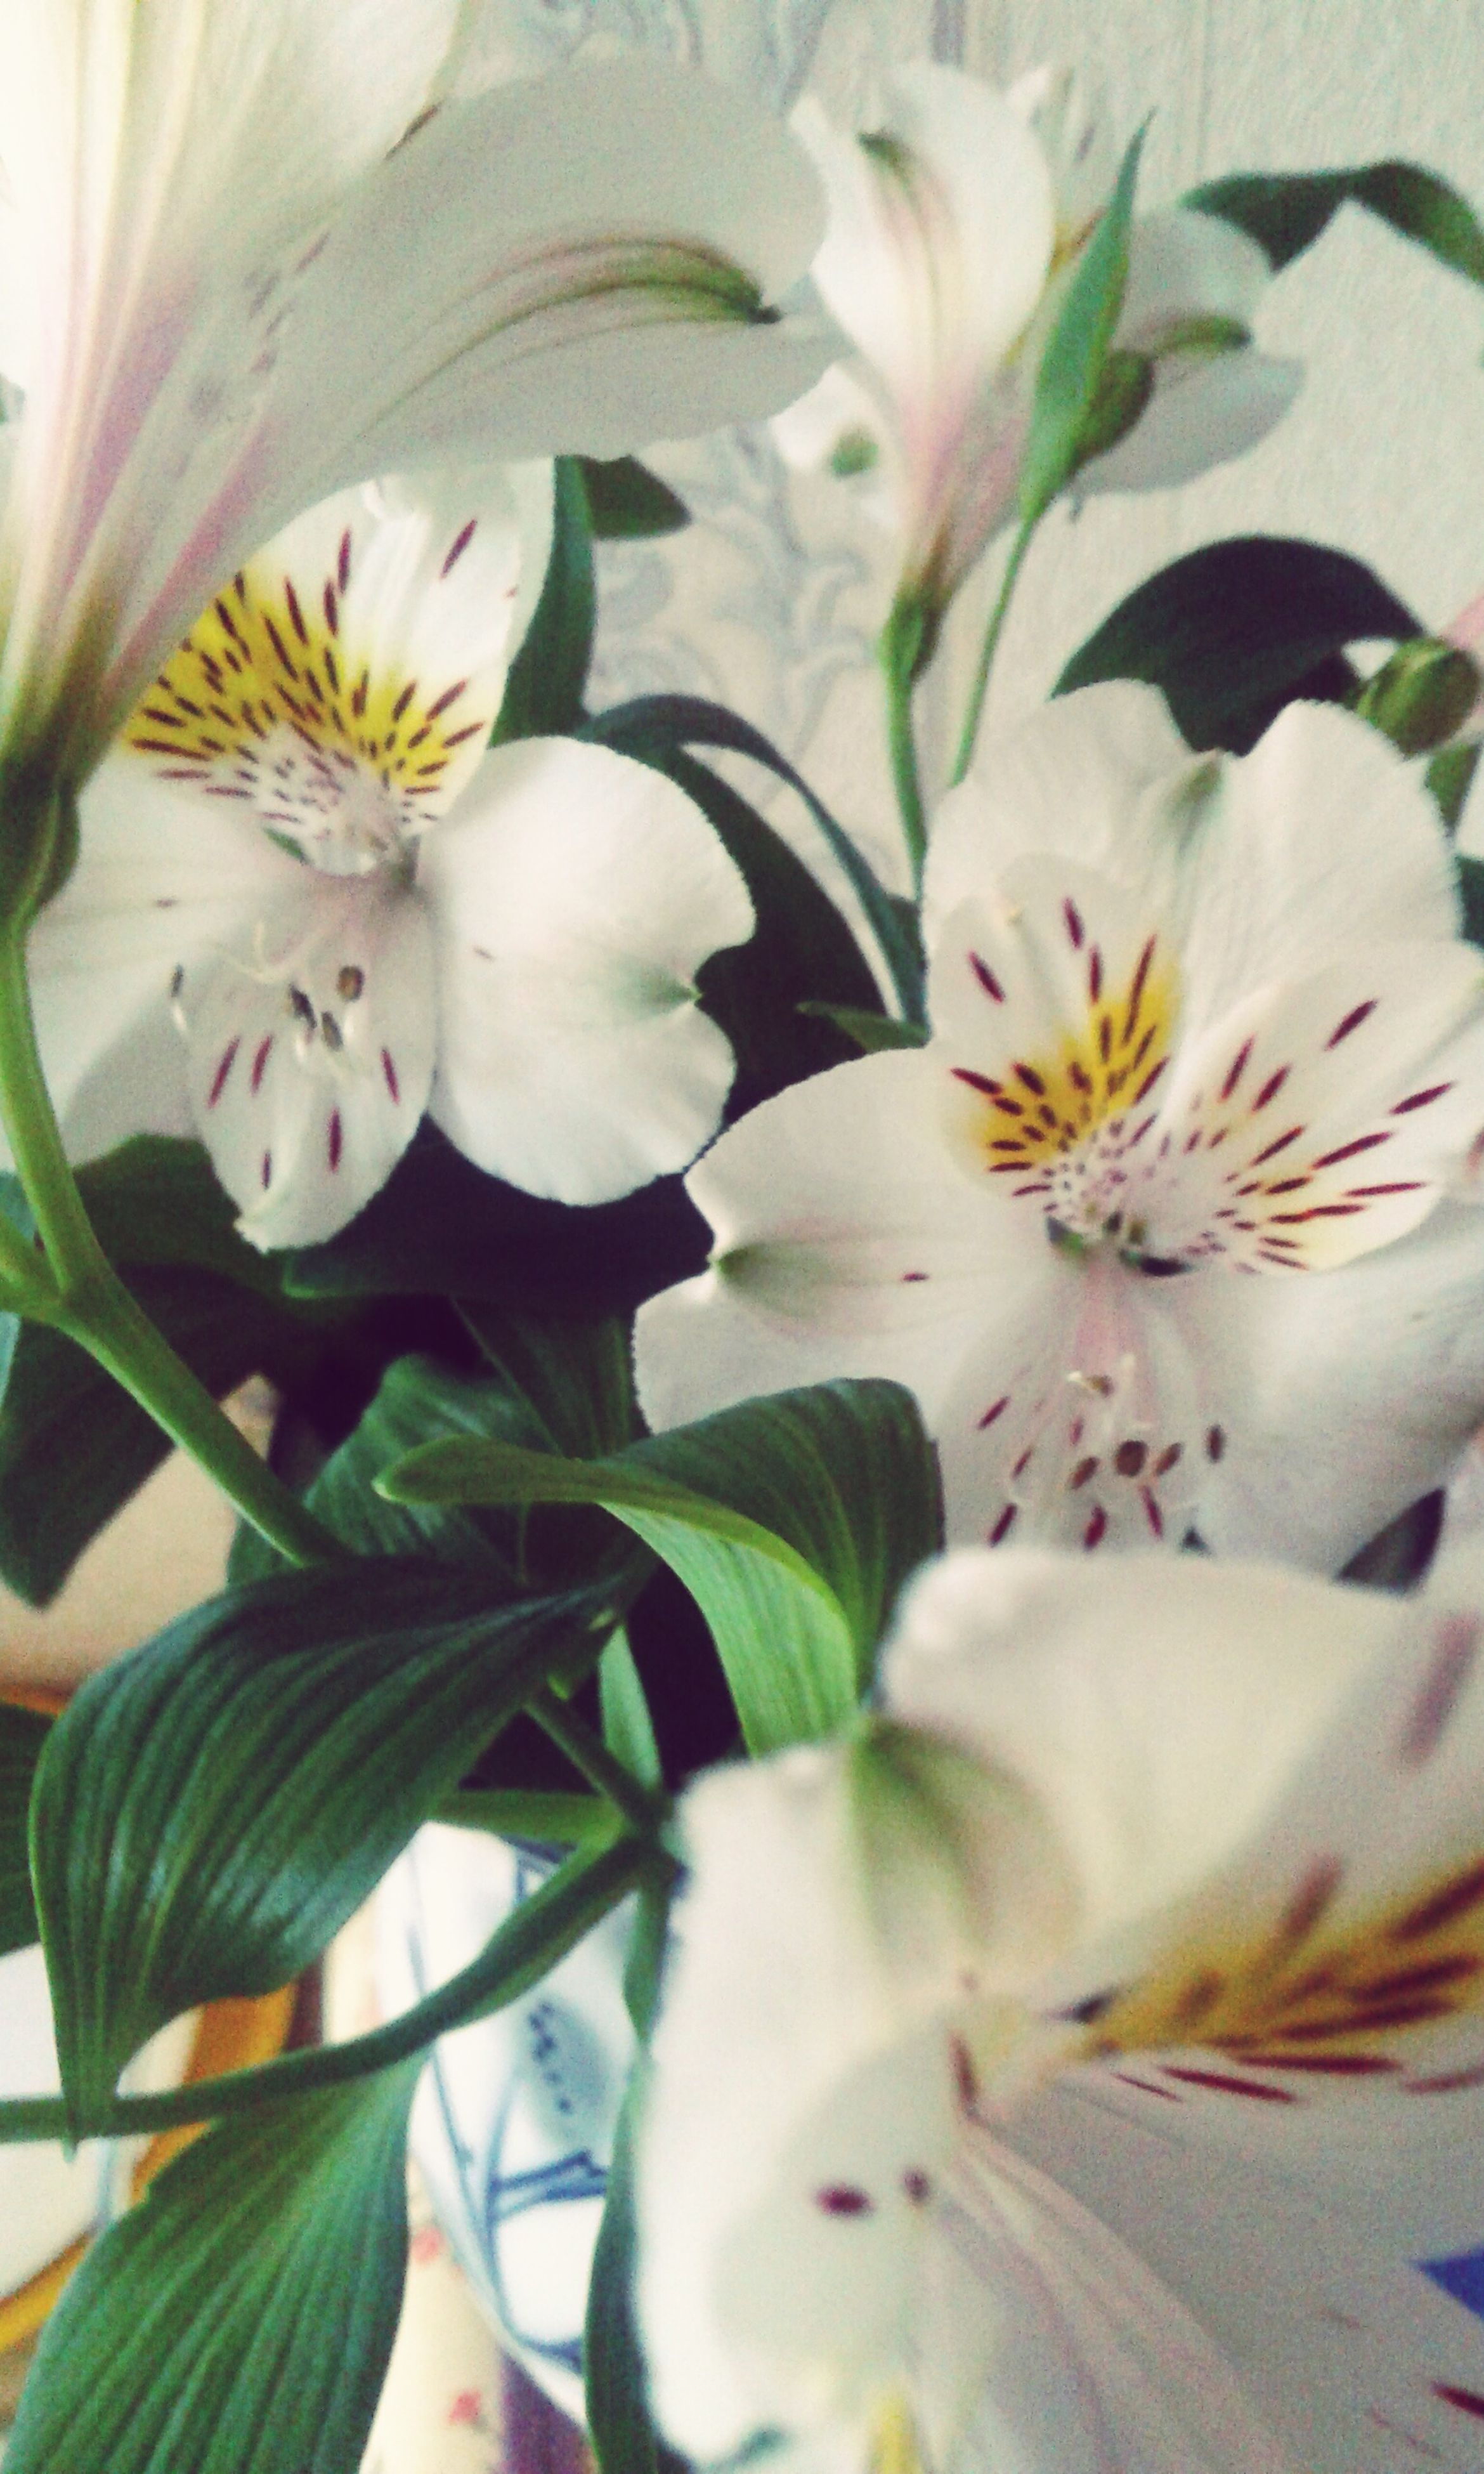 flower, white color, petal, indoors, fragility, flower head, growth, freshness, close-up, pets, nature, plant, beauty in nature, leaf, white, blooming, day, no people, domestic animals, home interior